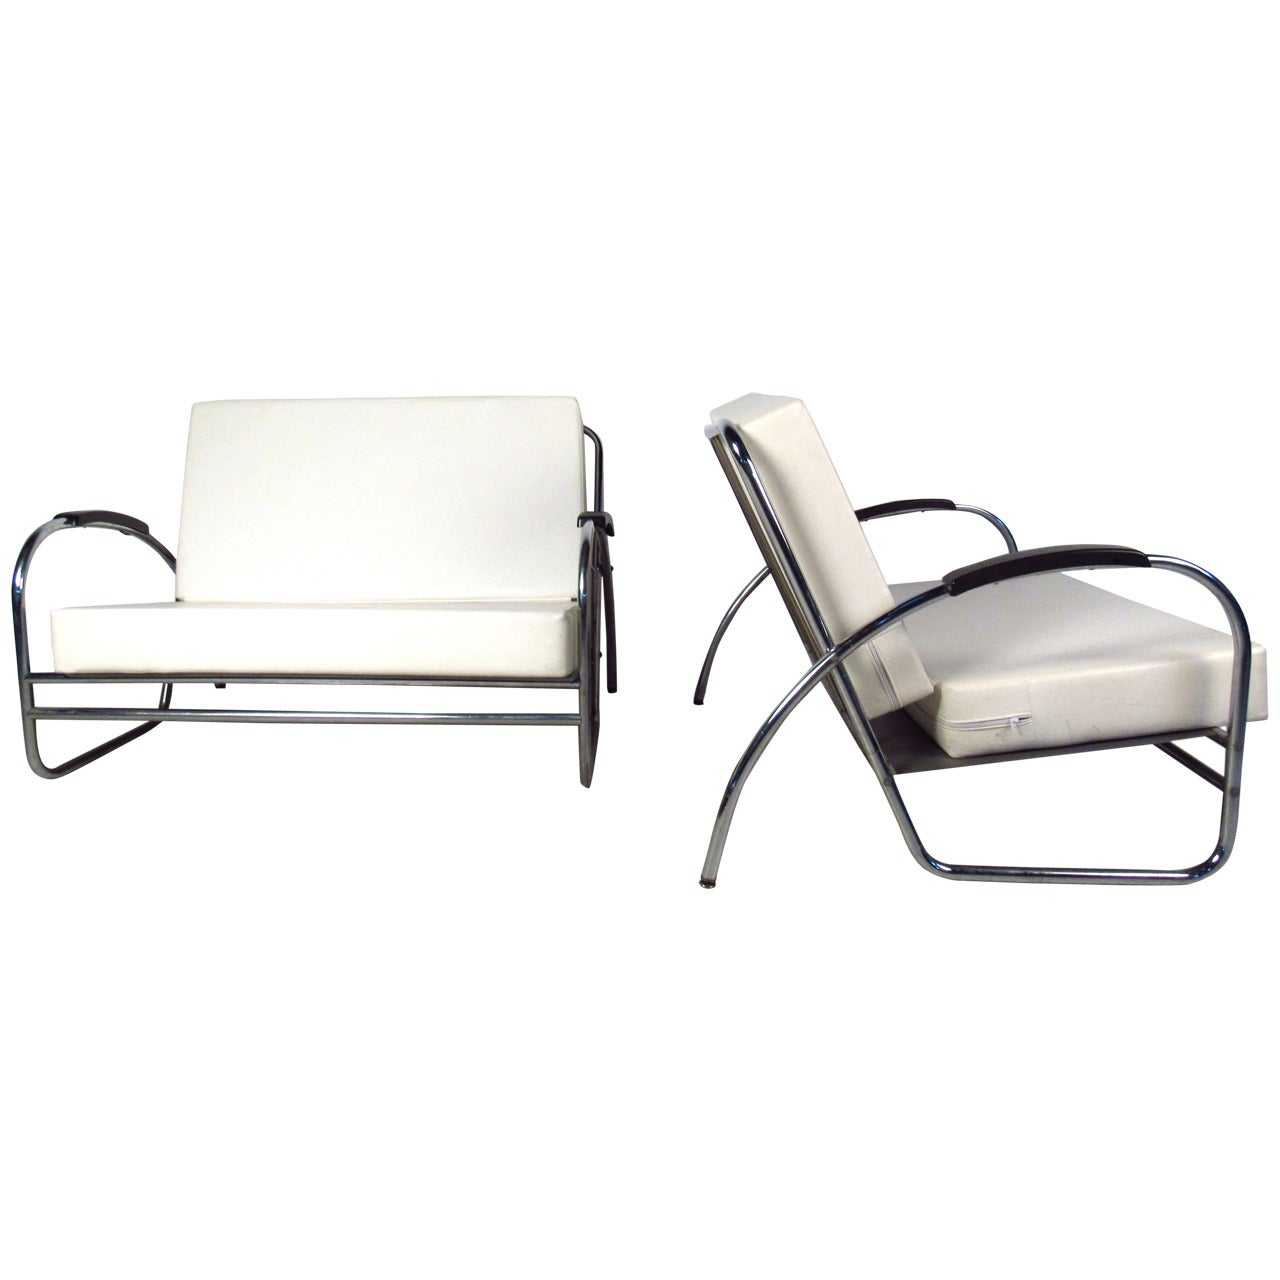 Pair of Vintage Modern Oversized Lounge Chairs by Royal Metal